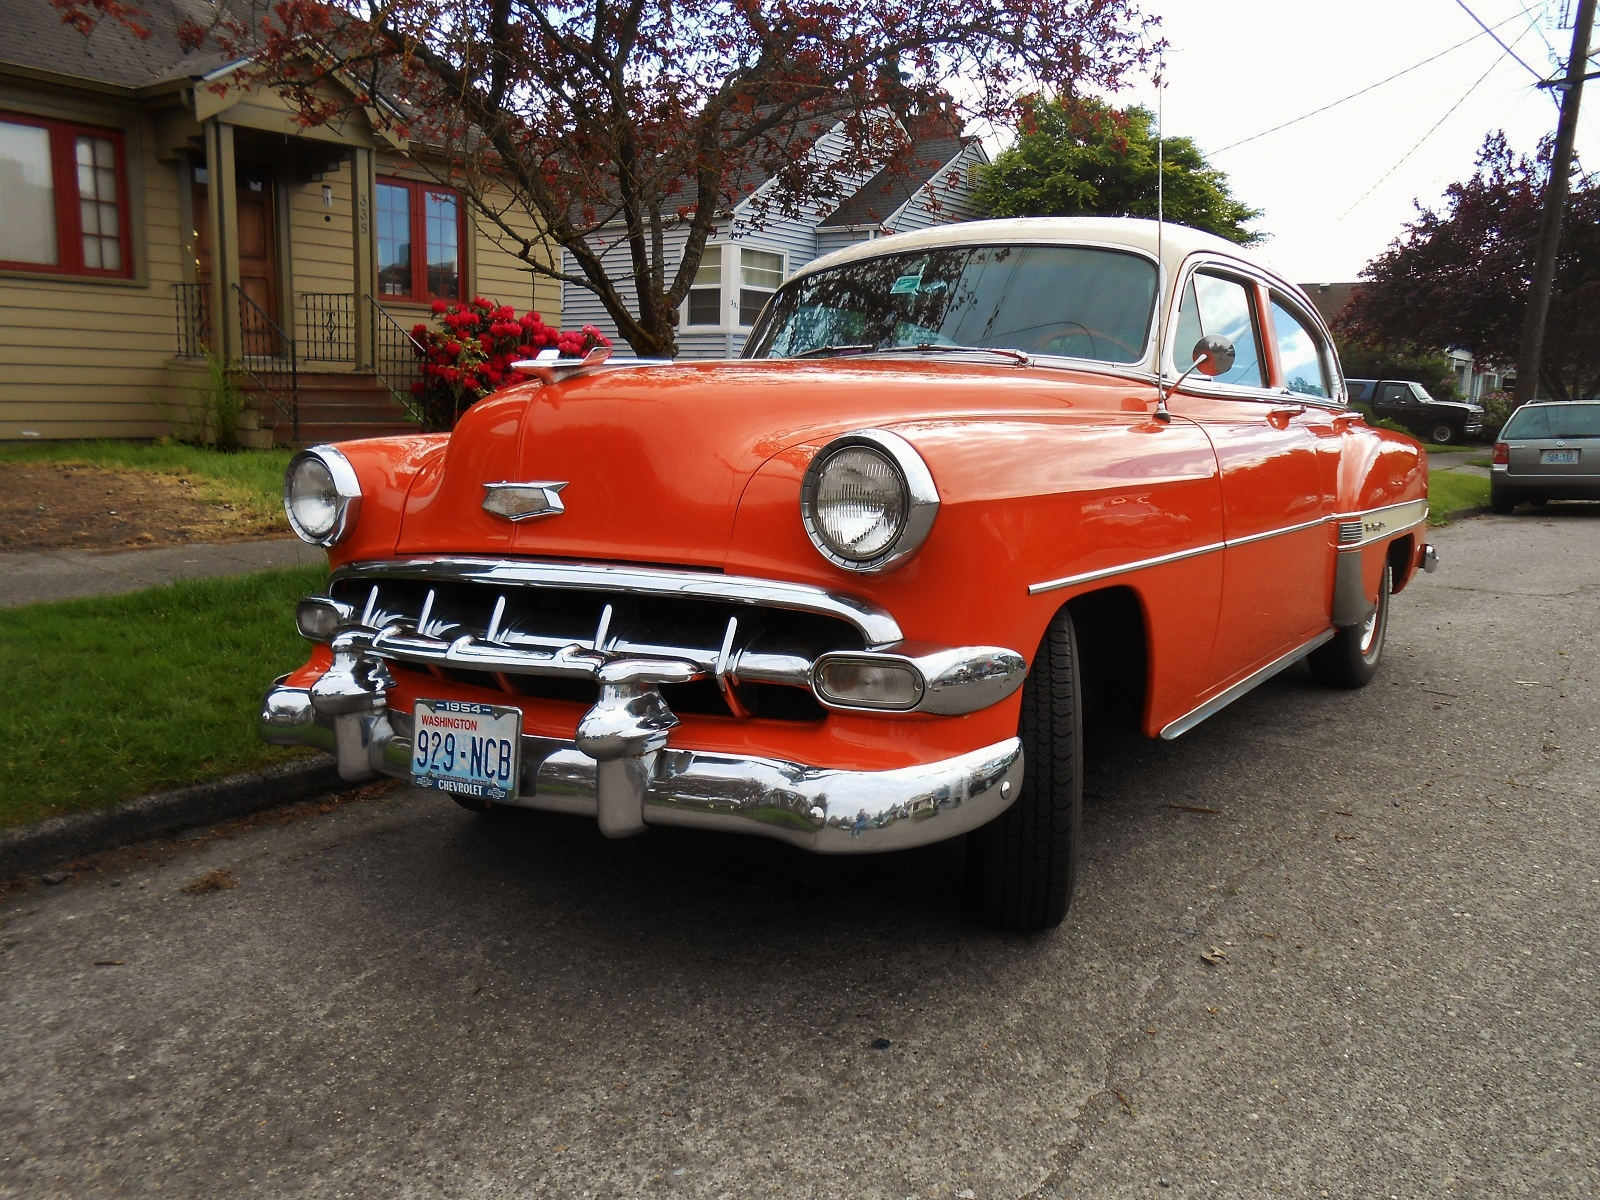 Seattles Parked Cars 1954 Chevrolet Bel Air Sedan Unlike Most Restored Airs You See At Shows This One Is A And Painted In An Fantastic Shade Of Orange